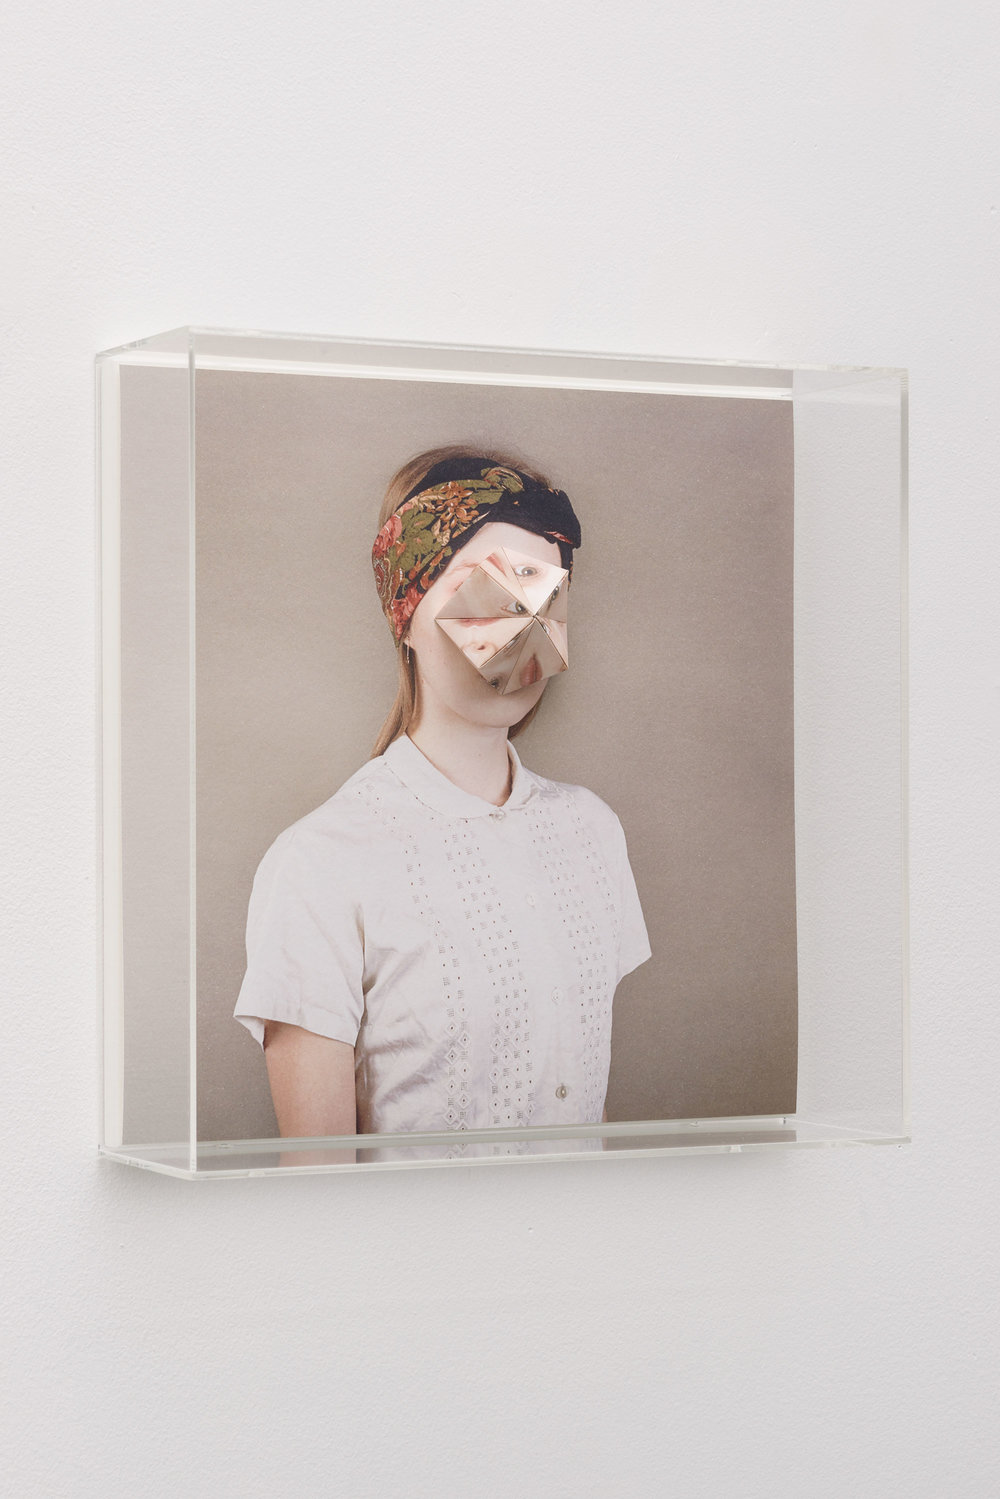 Alma Haser,  Patient No. 20 HD (Emily) , 2016  Digital pigment print with folded digital pigment print sculpture, plexiglass box, 30 x 30 x 10 cm (approx. 12 x 12 x 4 in), edition of 5   Inquire